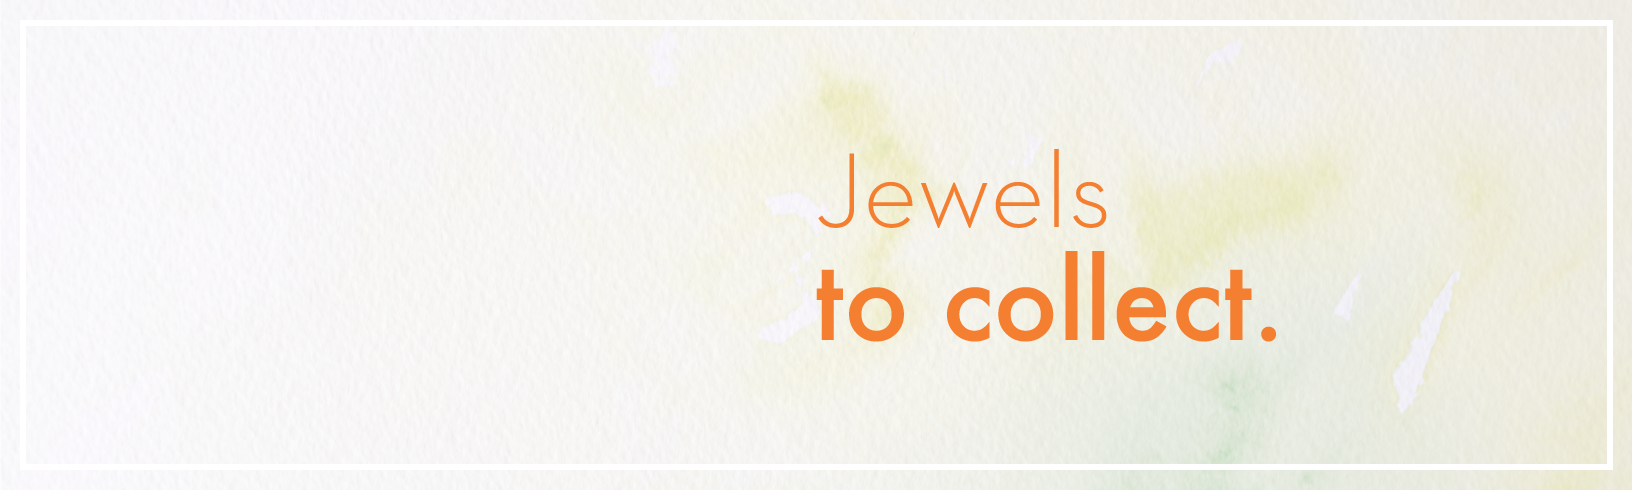 Jewels of Jaipur are jewels to collect in Wenatchee, WA.